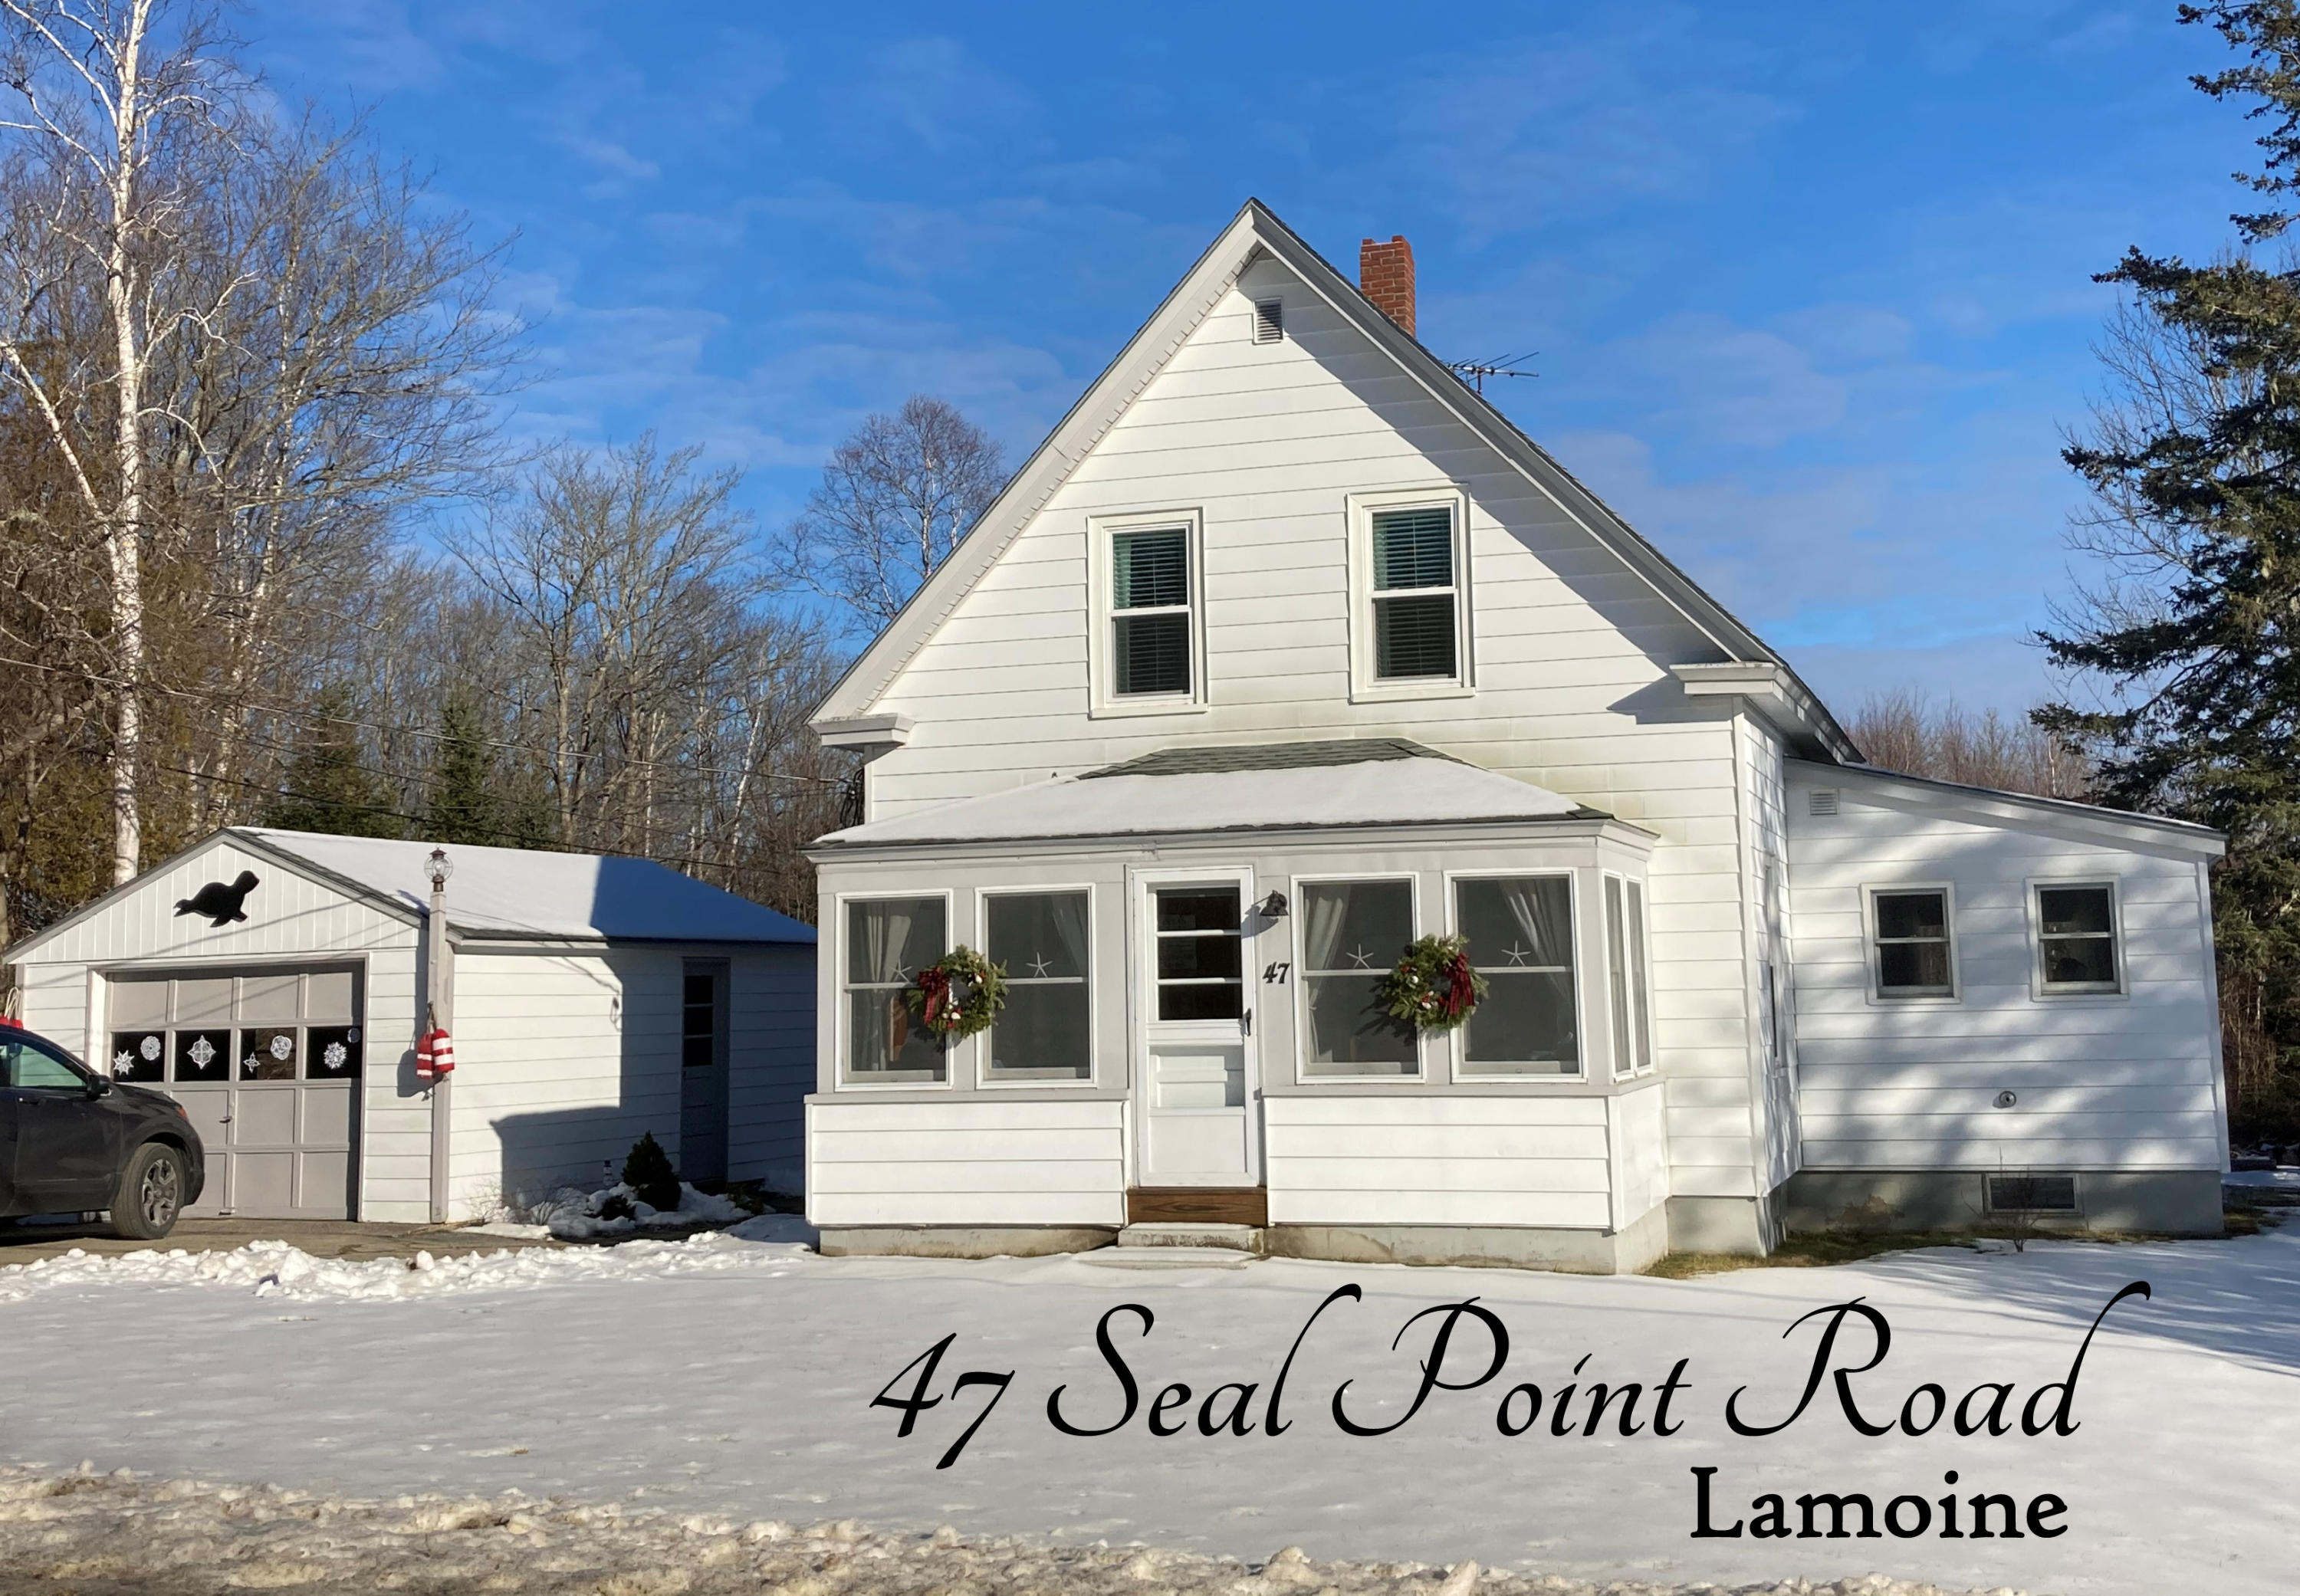 47 Seal Point Road